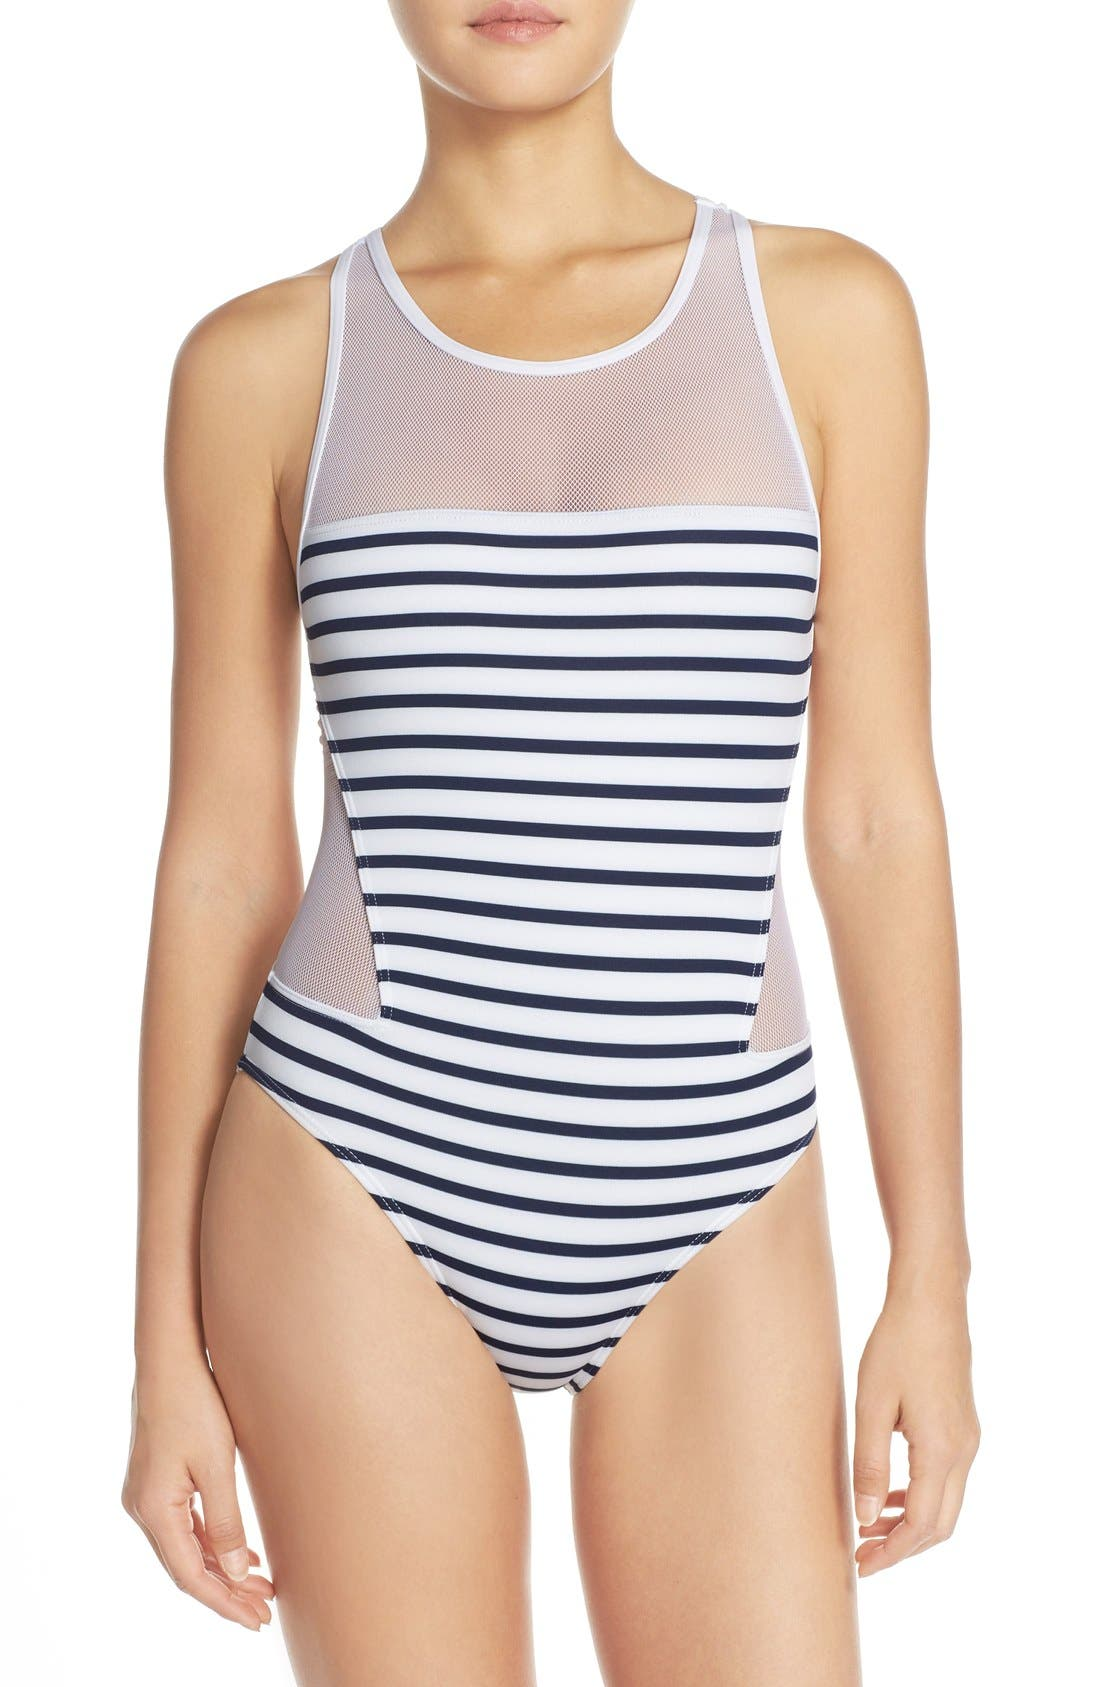 Alternate Image 1 Selected - Vince Camuto 'Shore Side' One-Piece Swimsuit